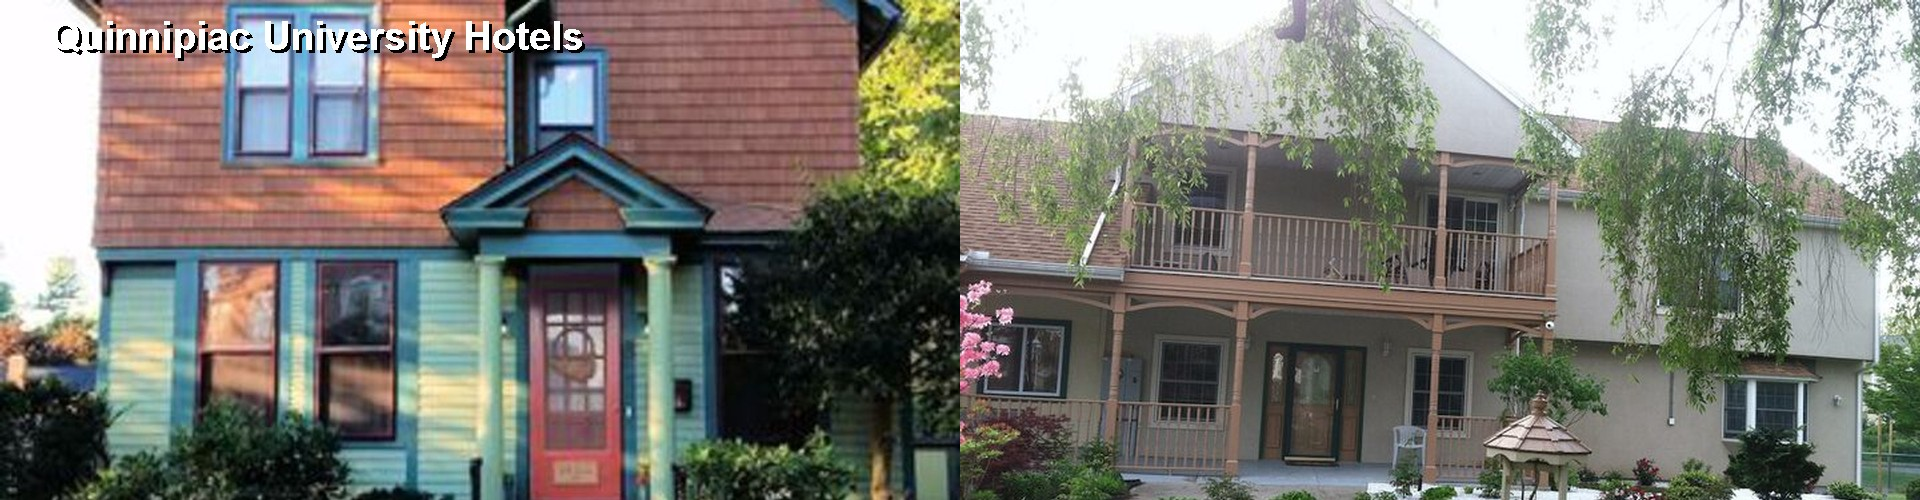 $44+ Hotels Near Quinnipiac University in Hamden CT